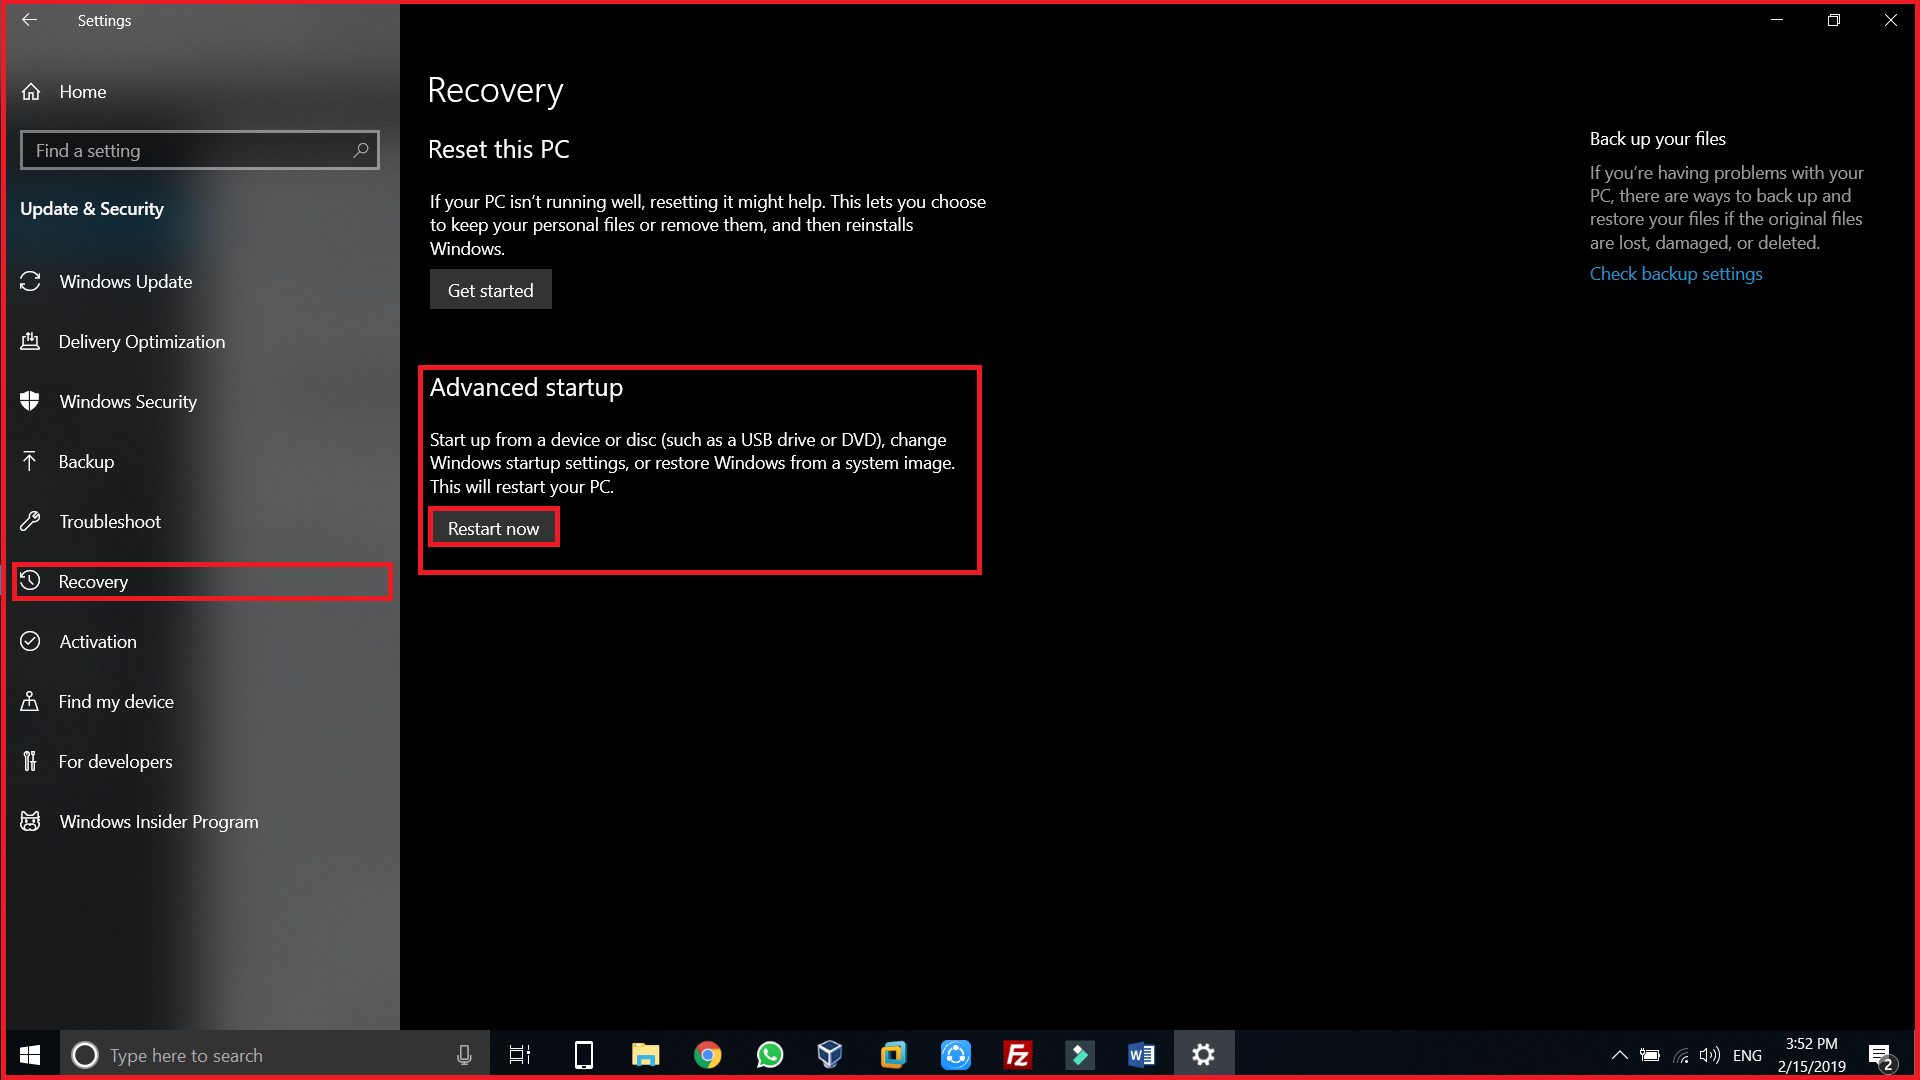 WIndows 10 settings recovery options